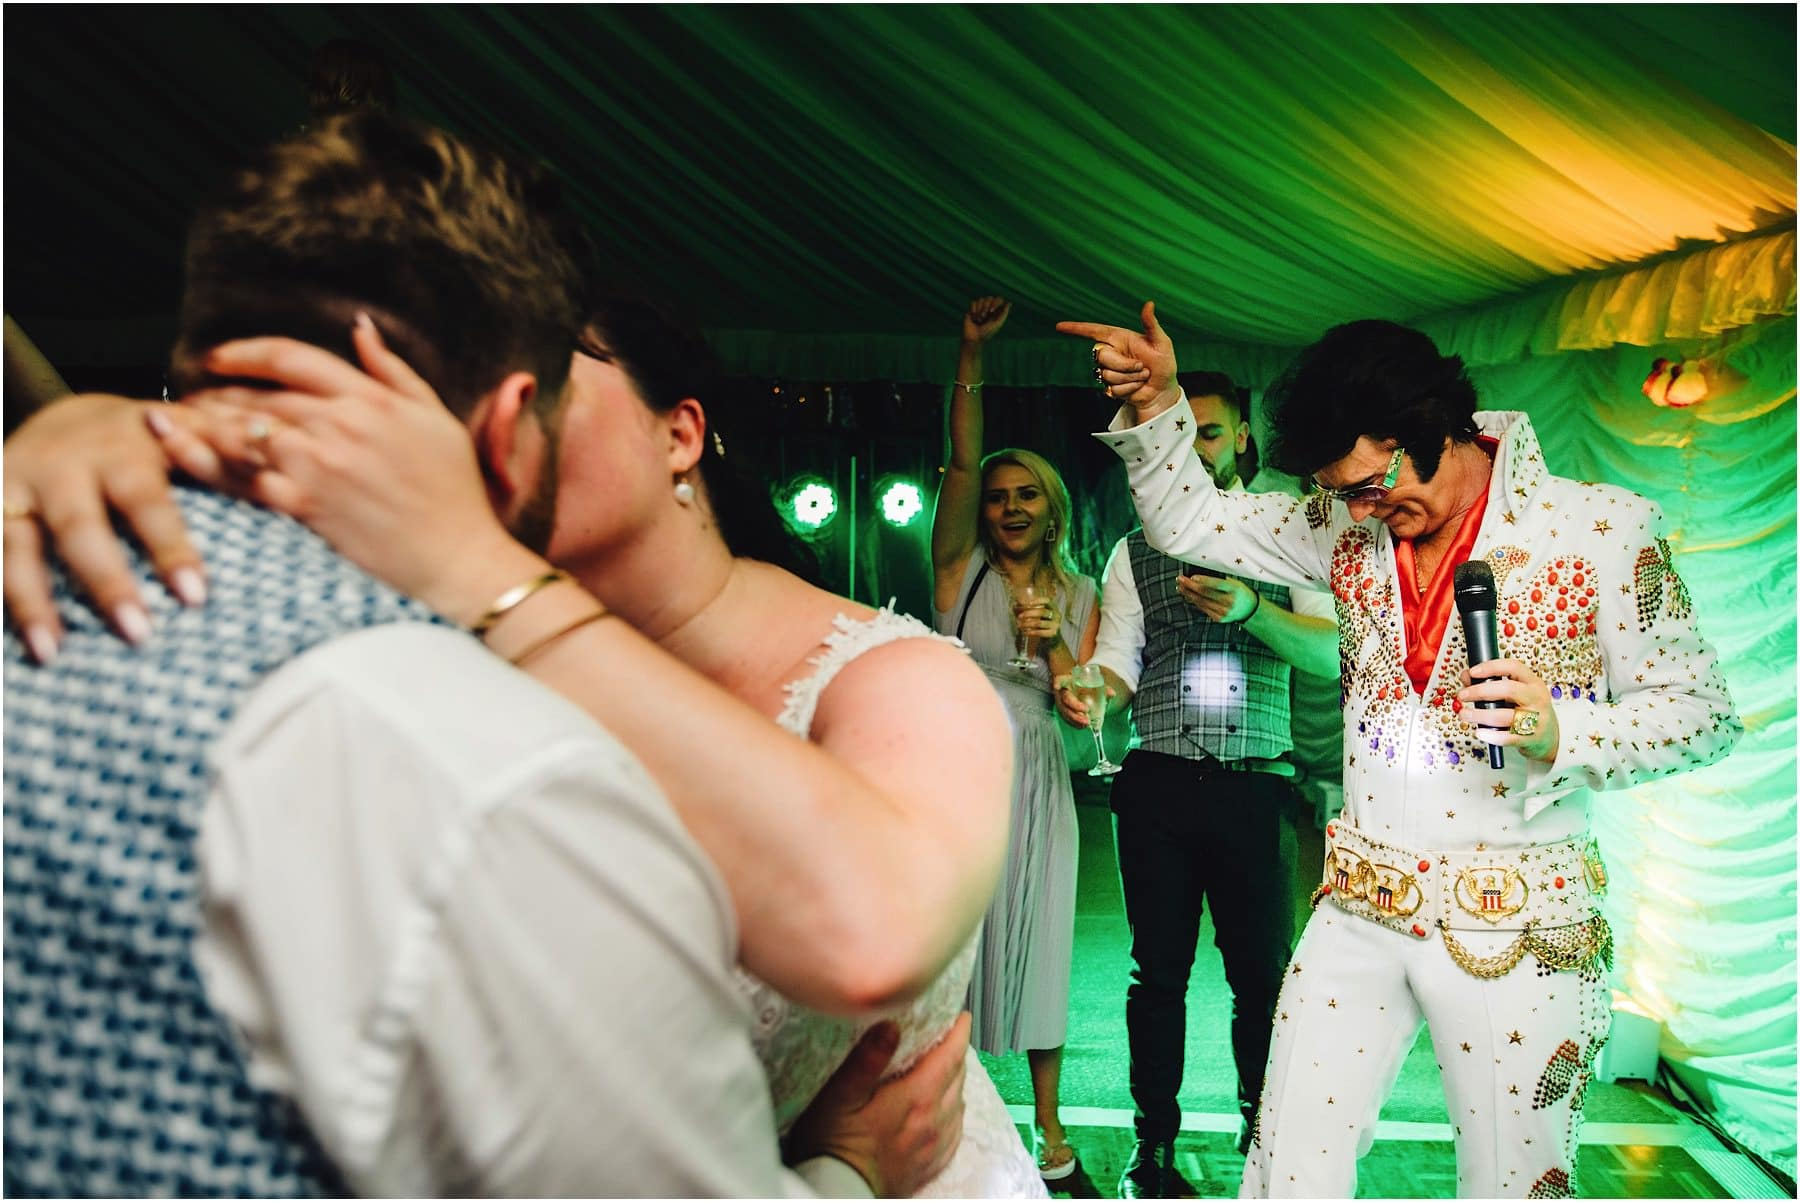 Elvis impersonator pointing at bride and groom